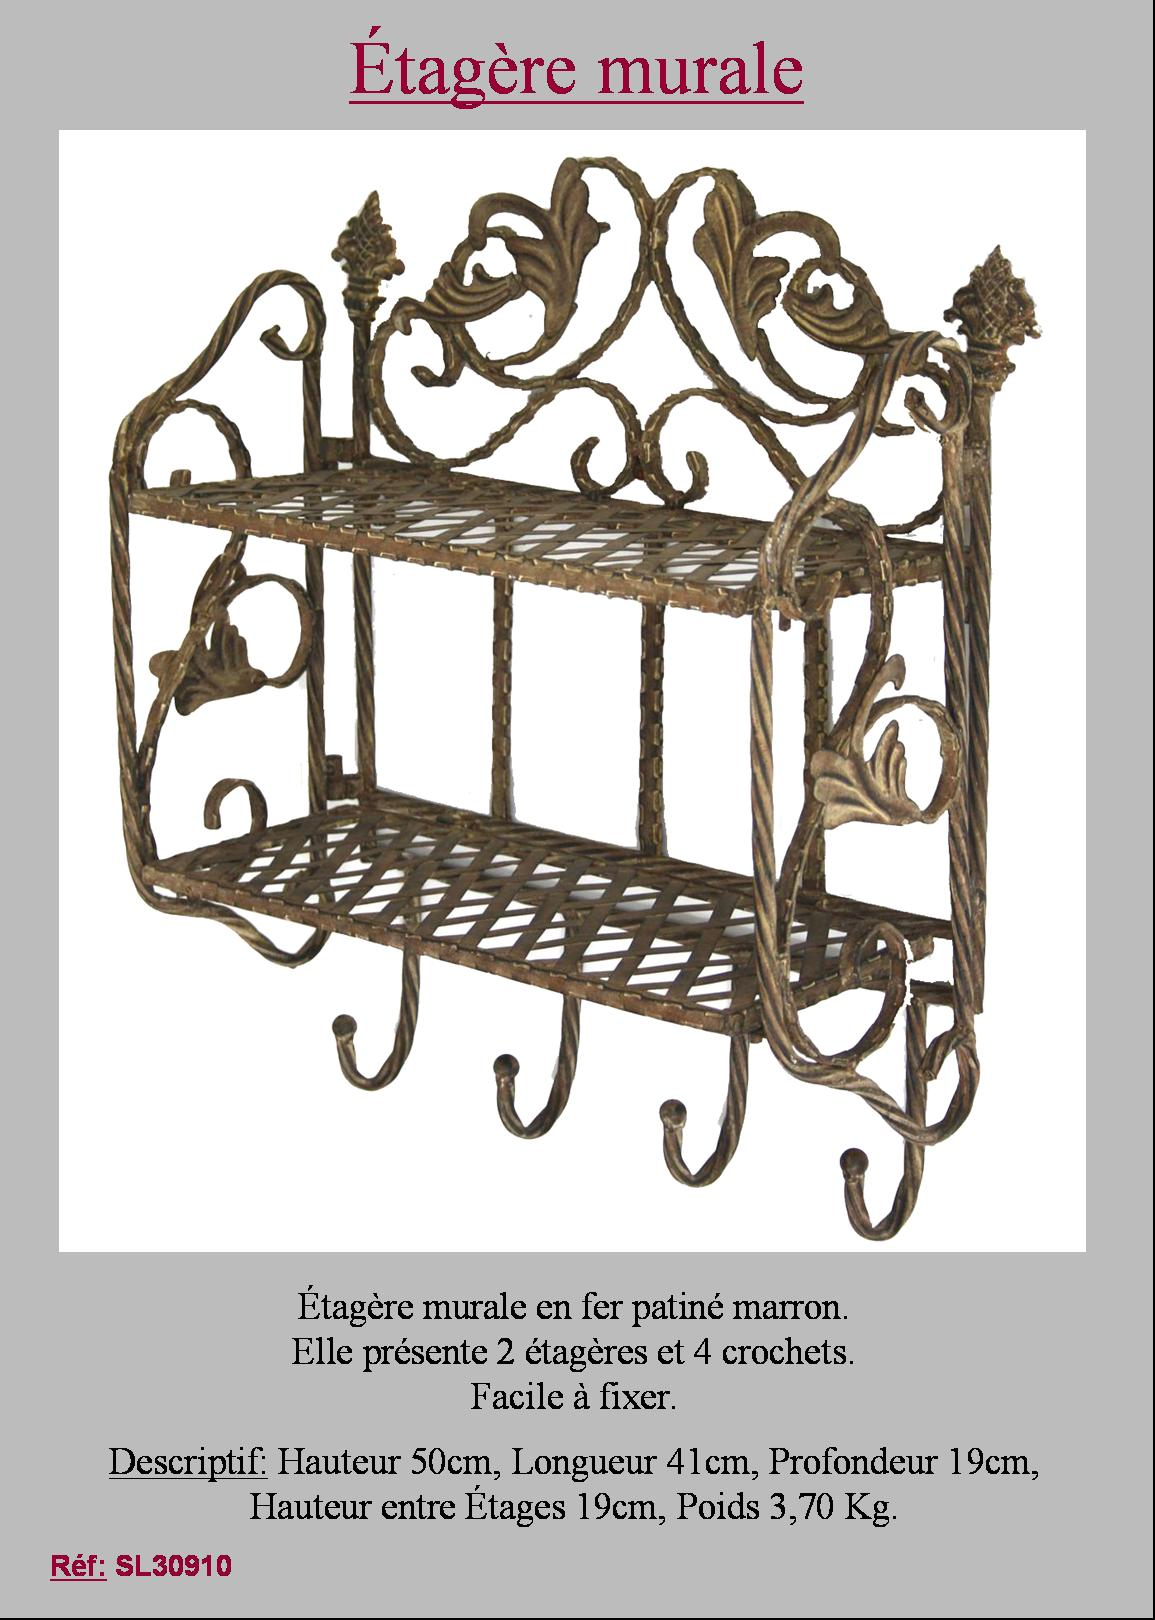 etagere boulangere console meuble de cuisine fer forge etagere a epices murale ebay. Black Bedroom Furniture Sets. Home Design Ideas